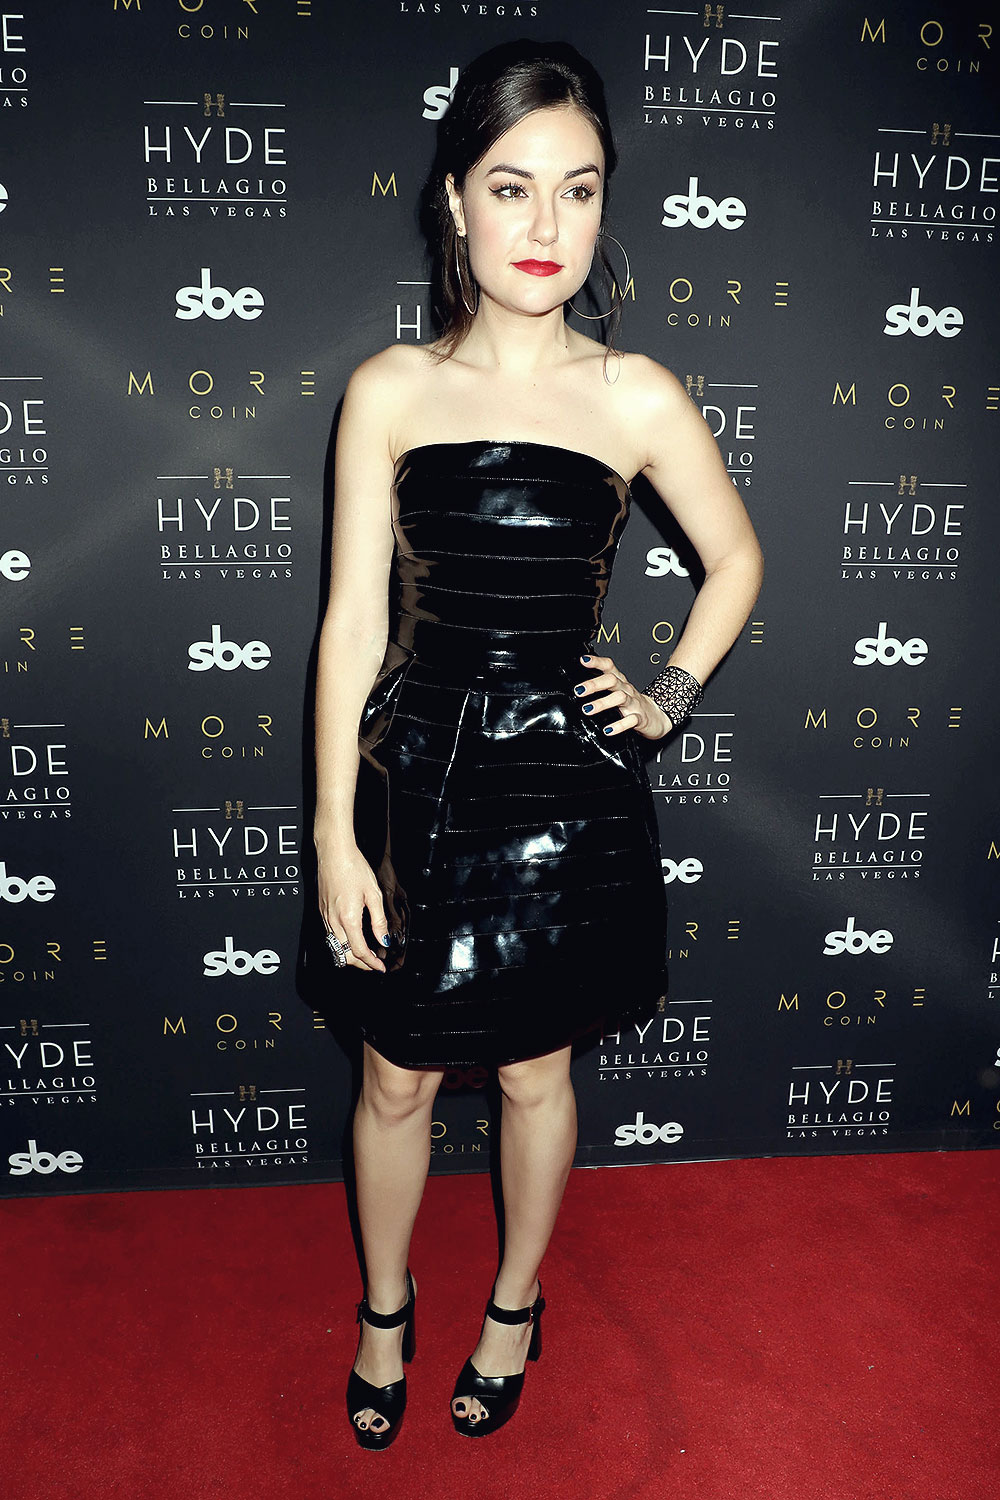 Mini Las Vegas >> Sasha Grey attends Stereo Hyde With Electrifying DJ Set - Leather Celebrities